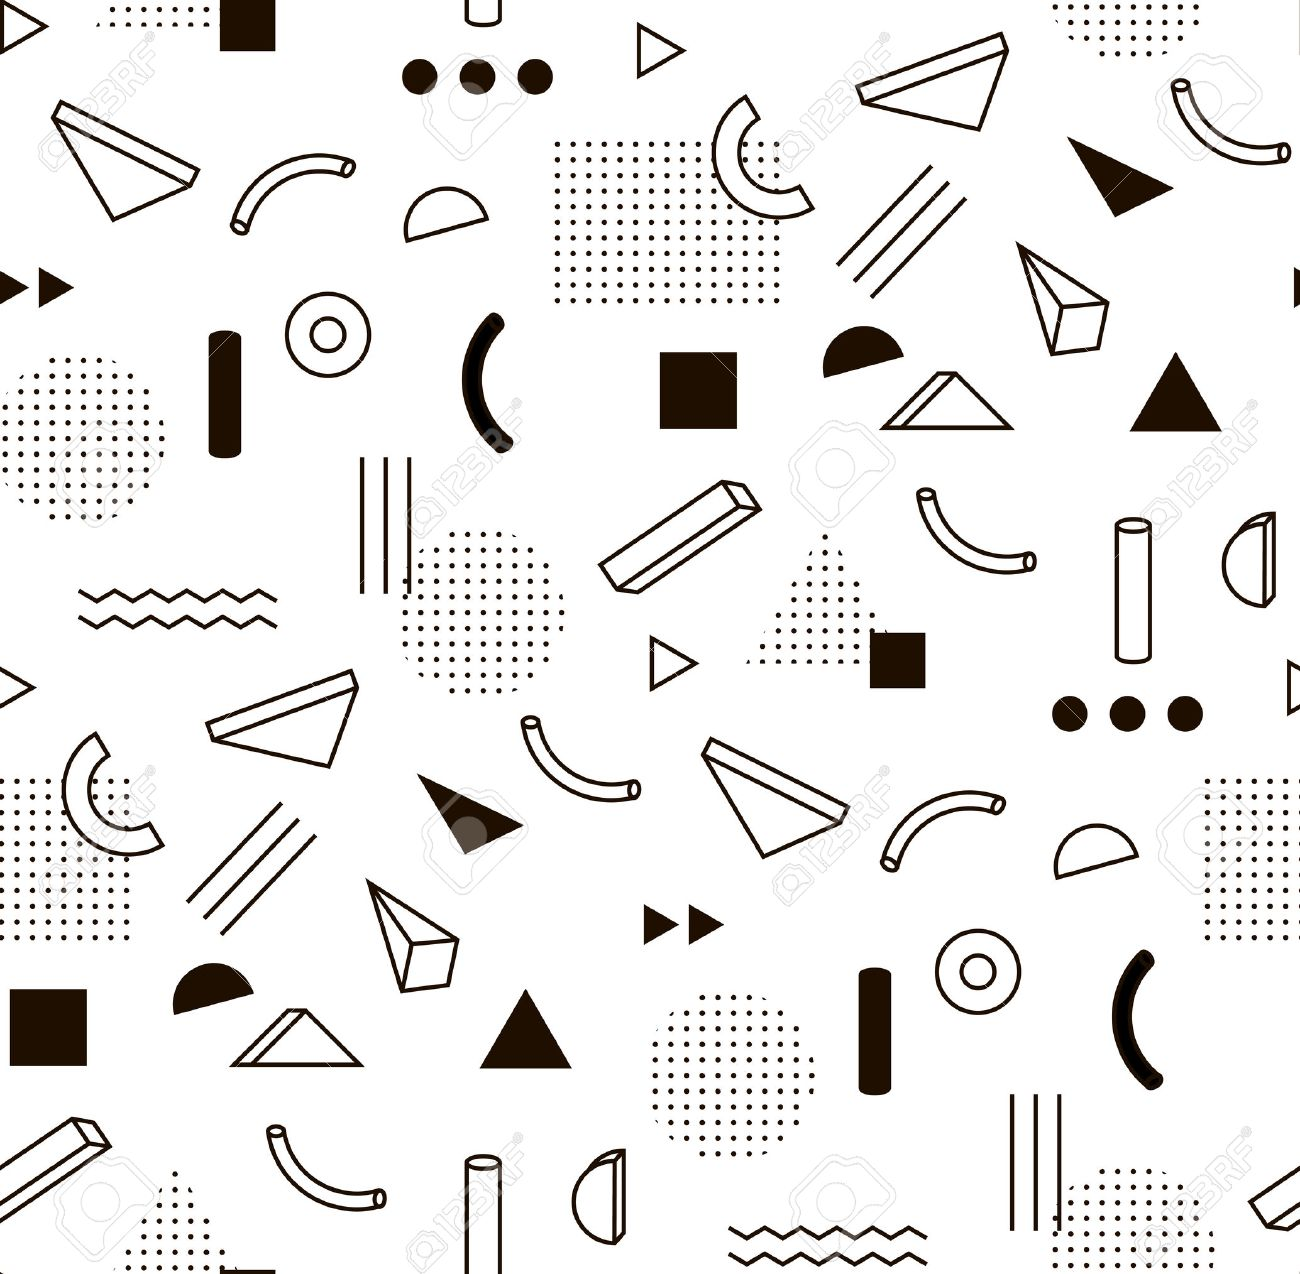 pattern with black and white geometric shapes. Hipster fashion Memphis style. Stock Vector - 53392556